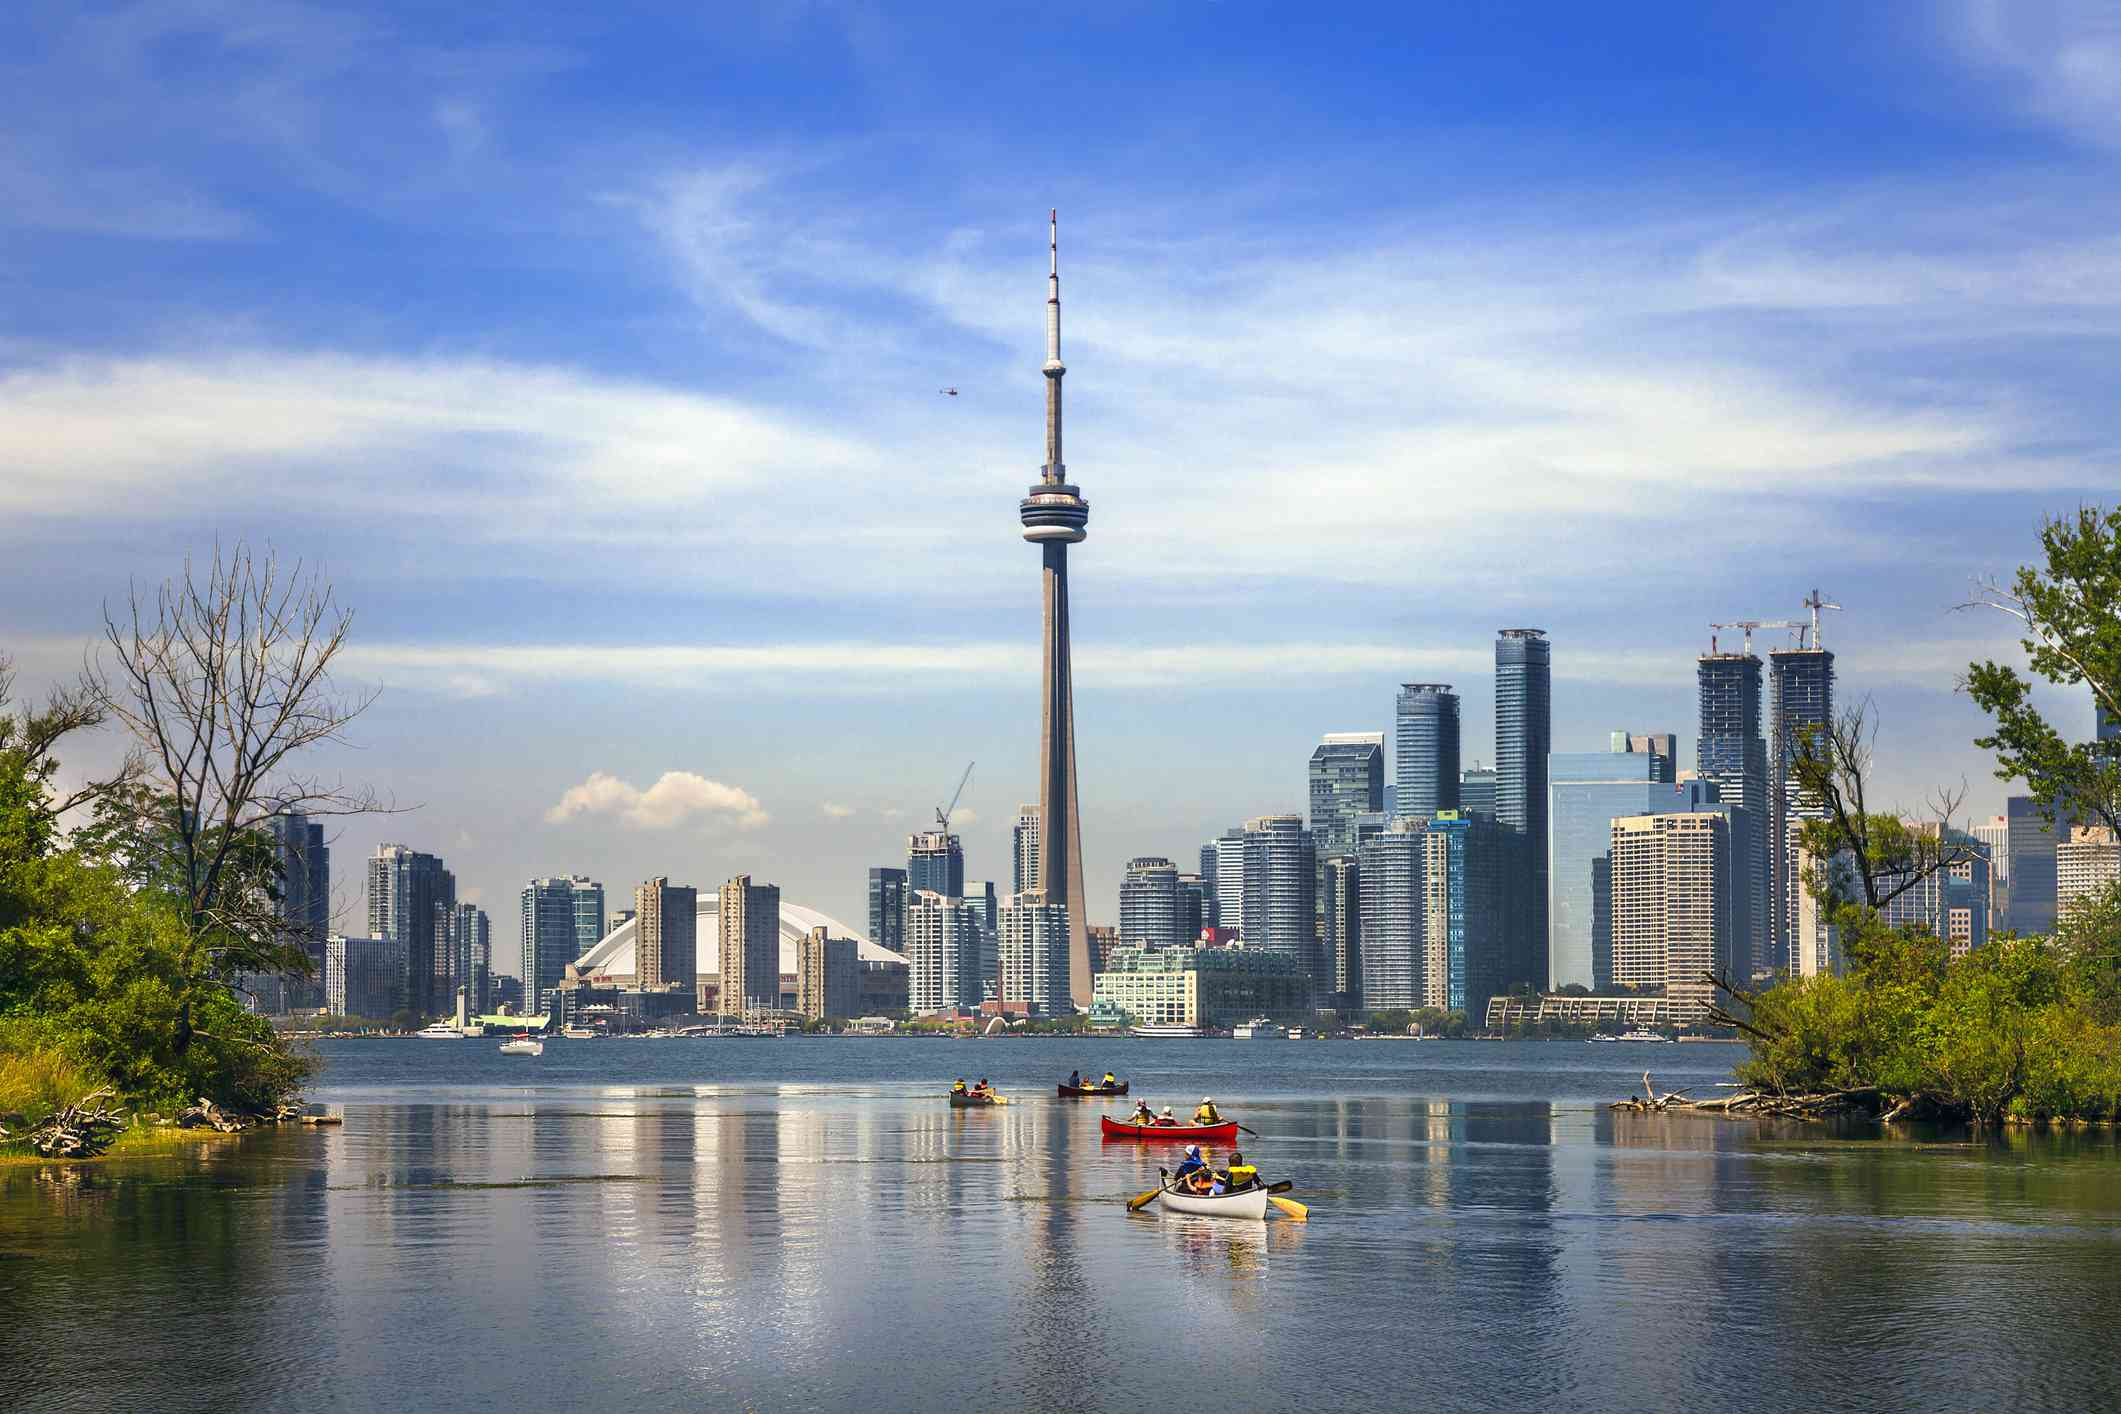 Kayakers in a large body of water with the Toronto skyline in the background